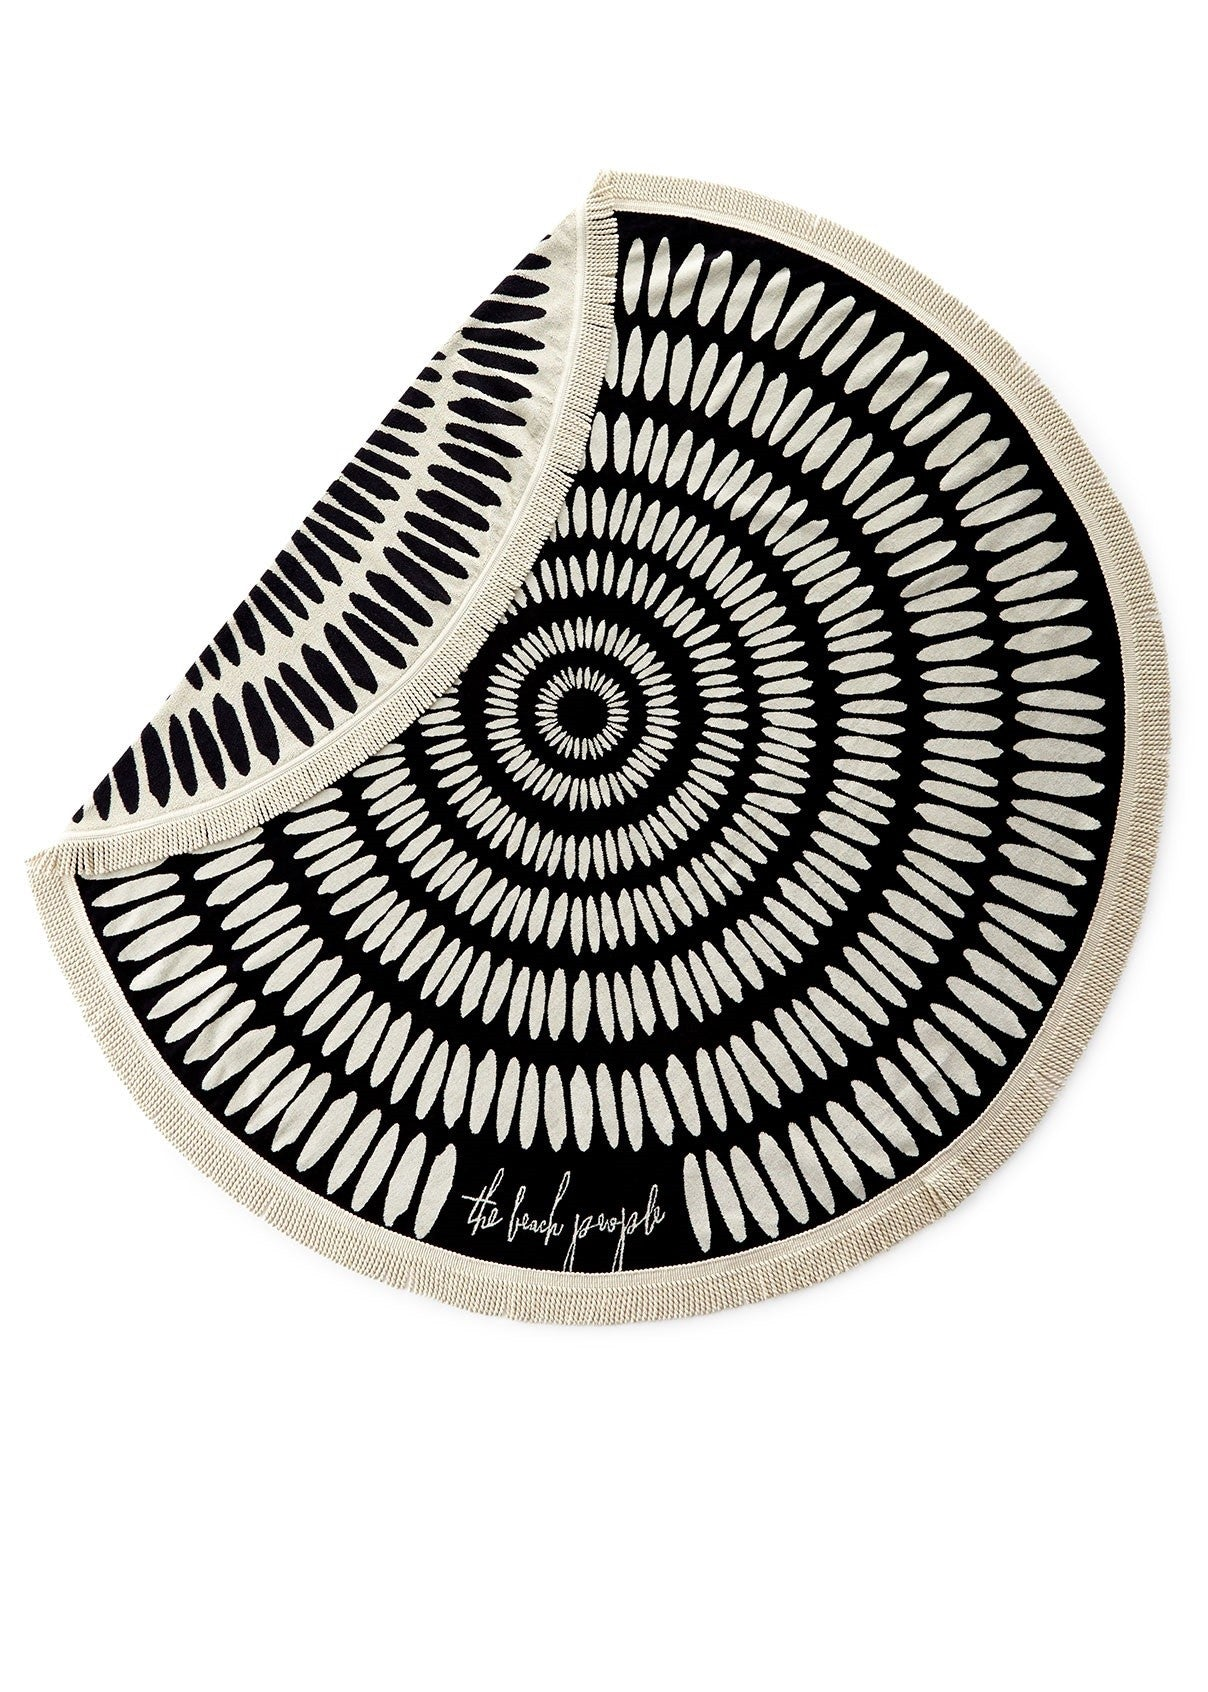 The Beach People Tulum towel black cream